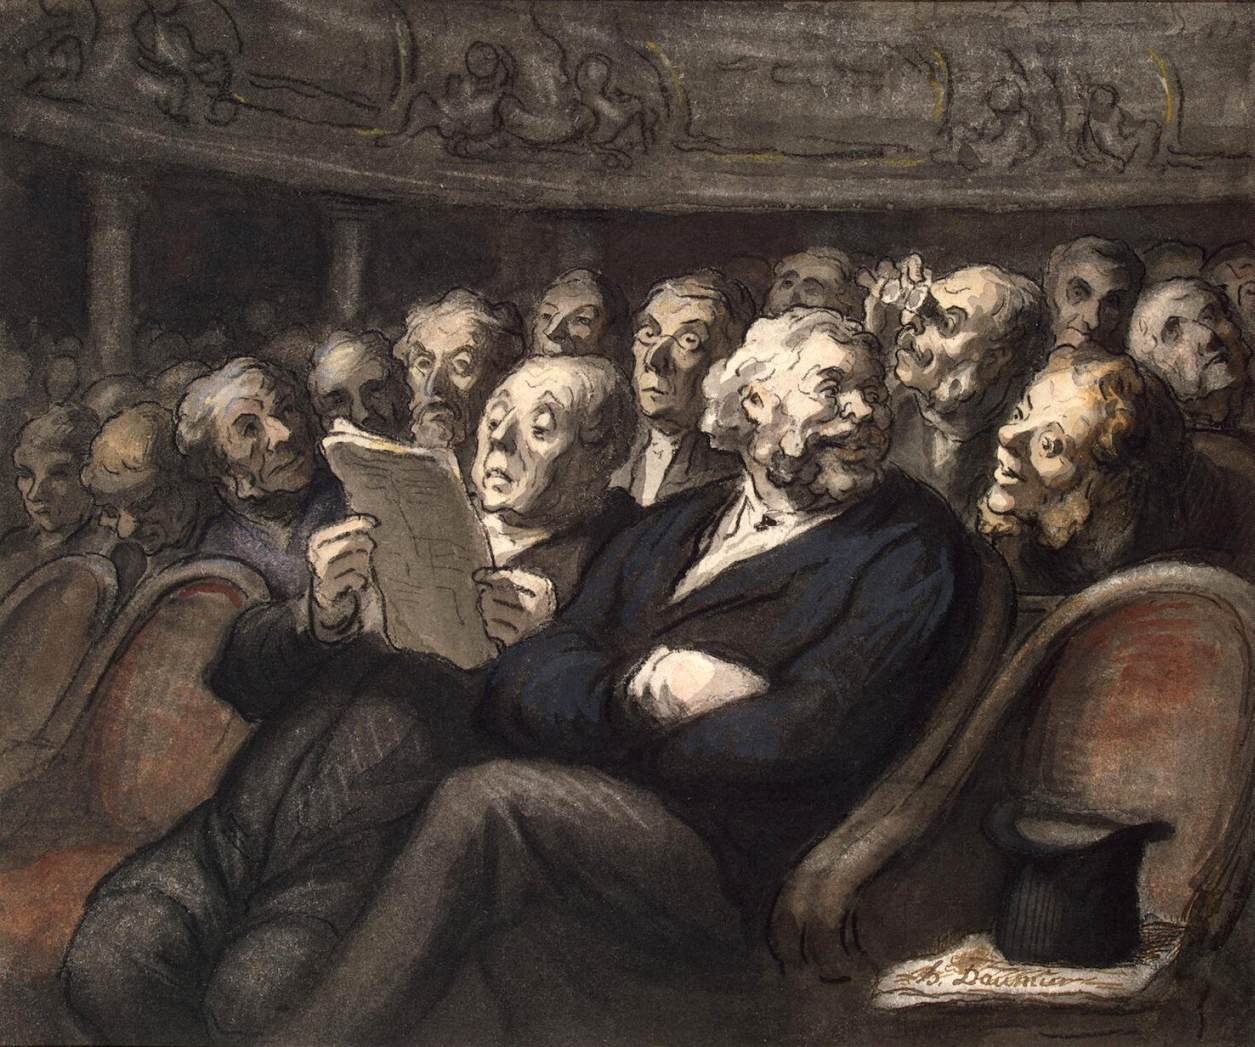 Honoré_Daumier_-_Intermission_at_the_Comédie_Française_-_WGA05962